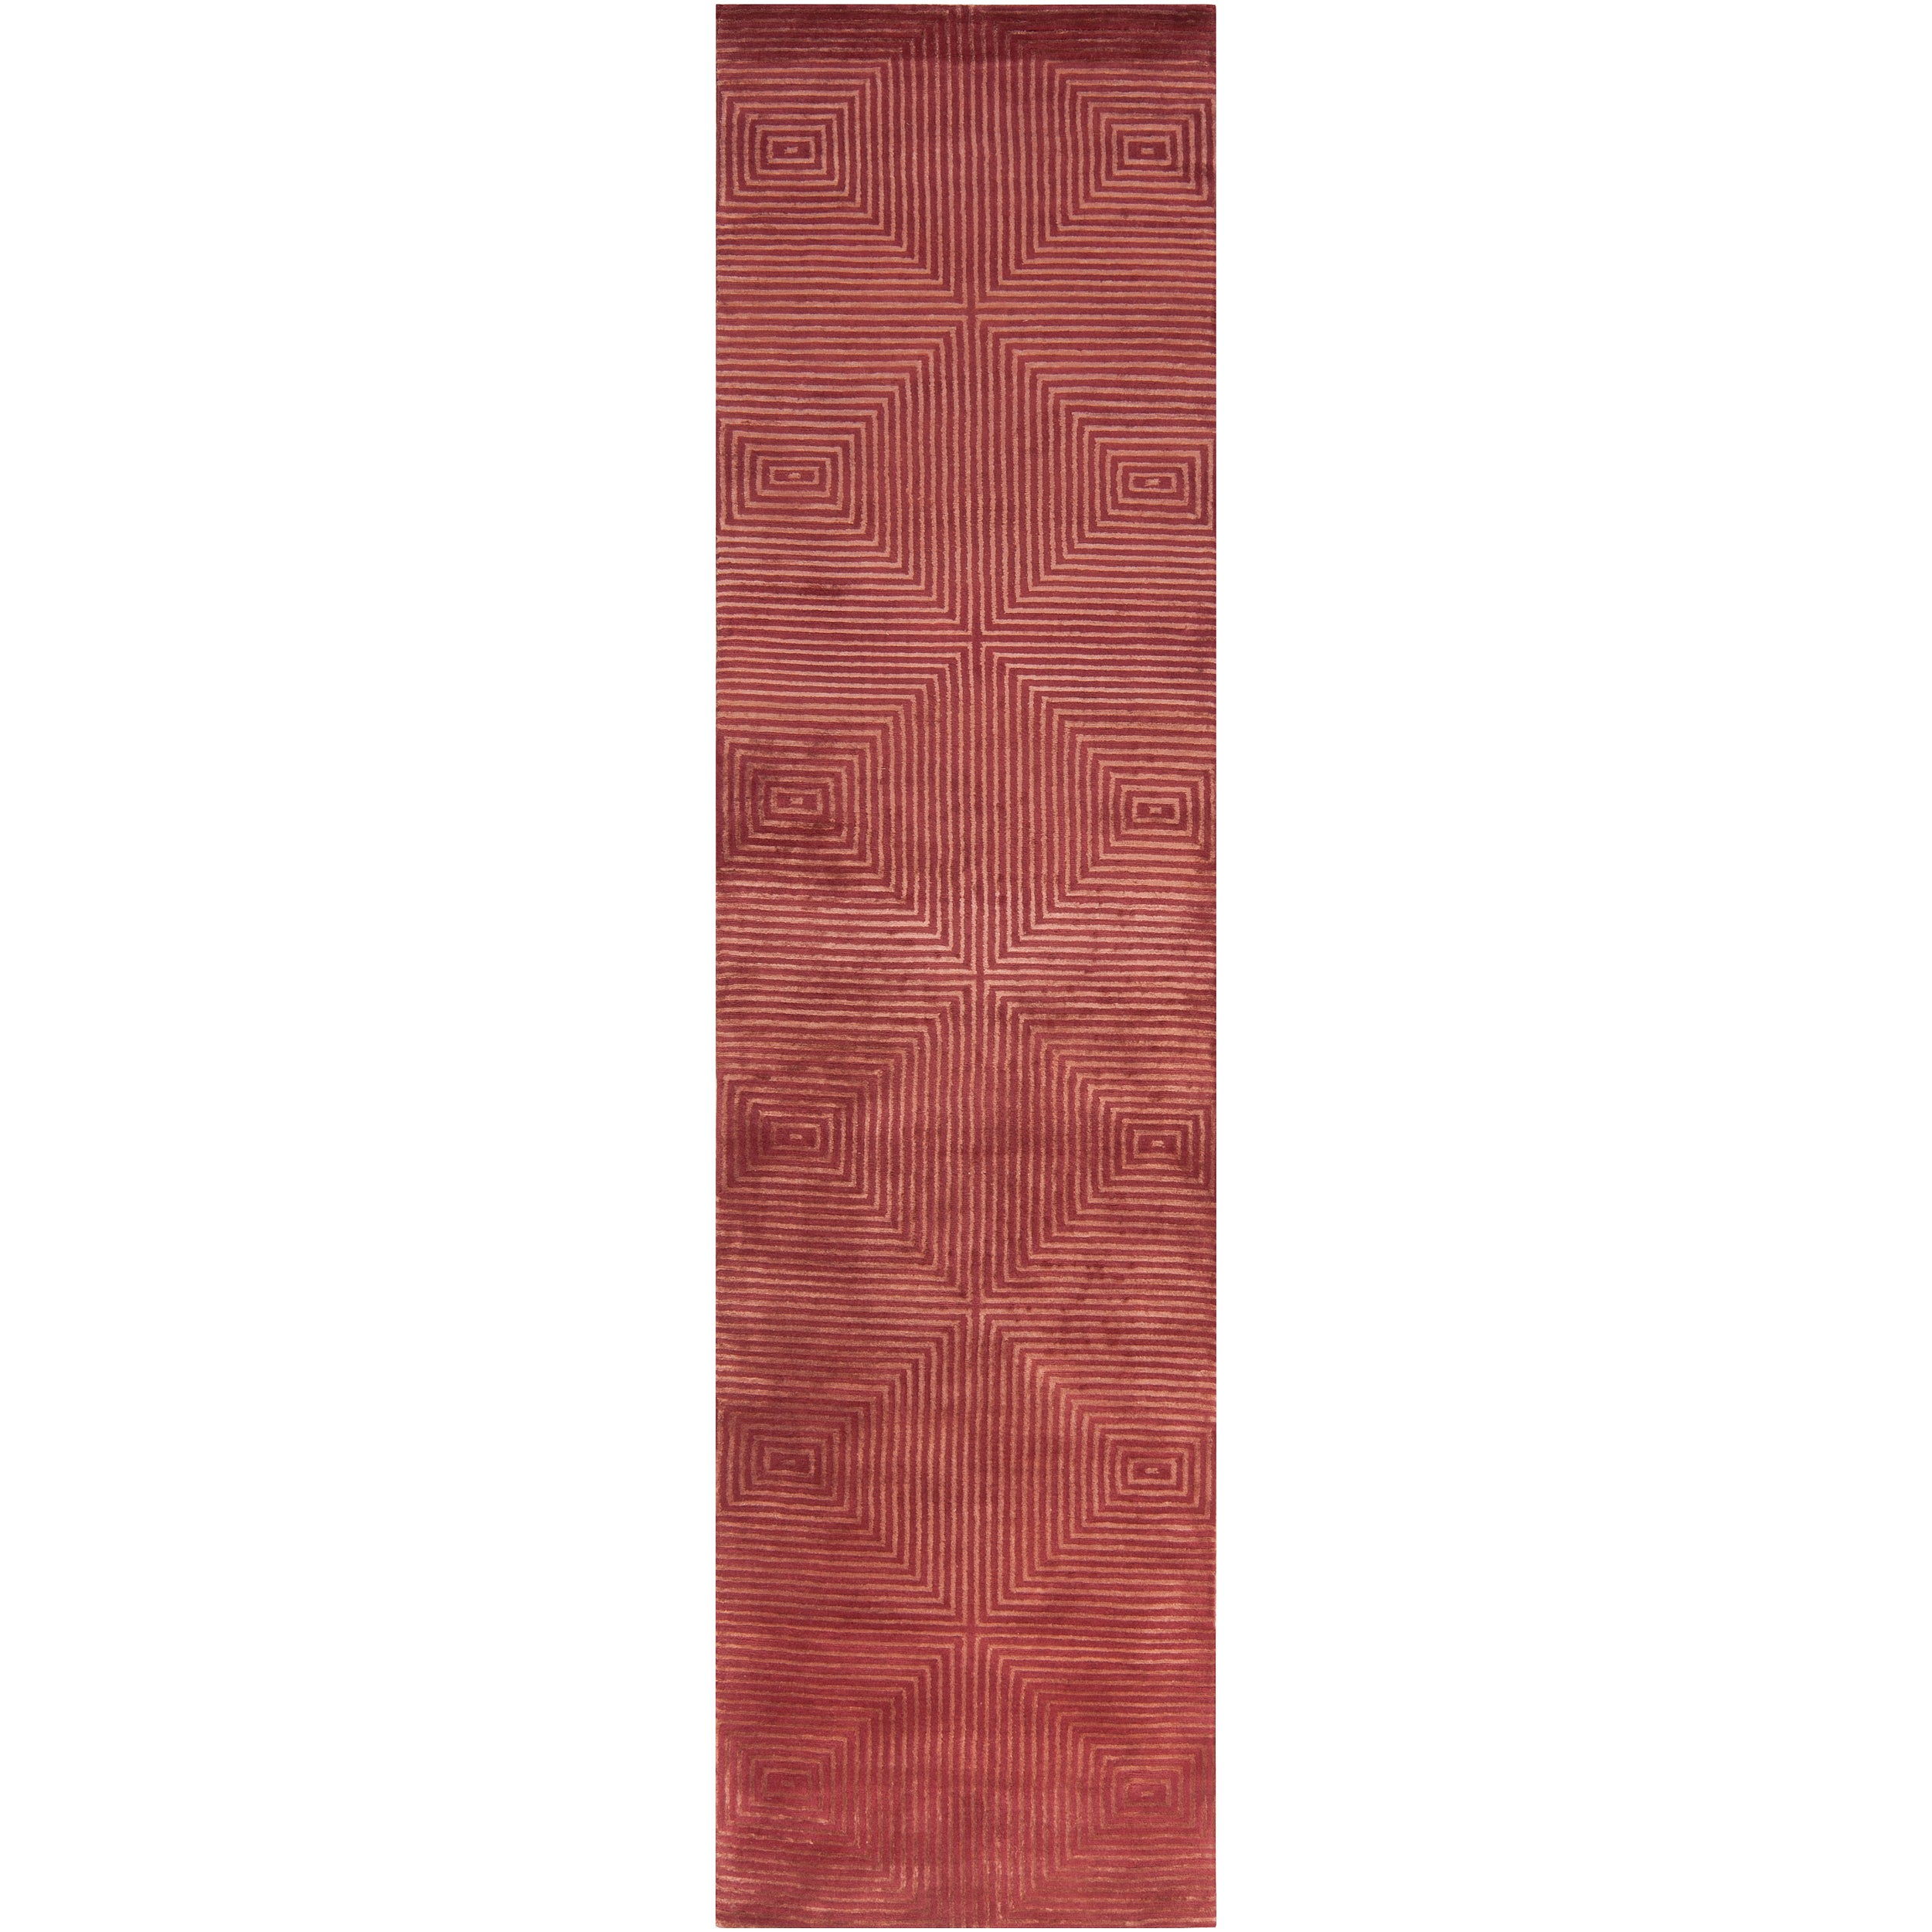 Hand-knotted Red Light House Geometric Wool Rug (2'6 x 10')